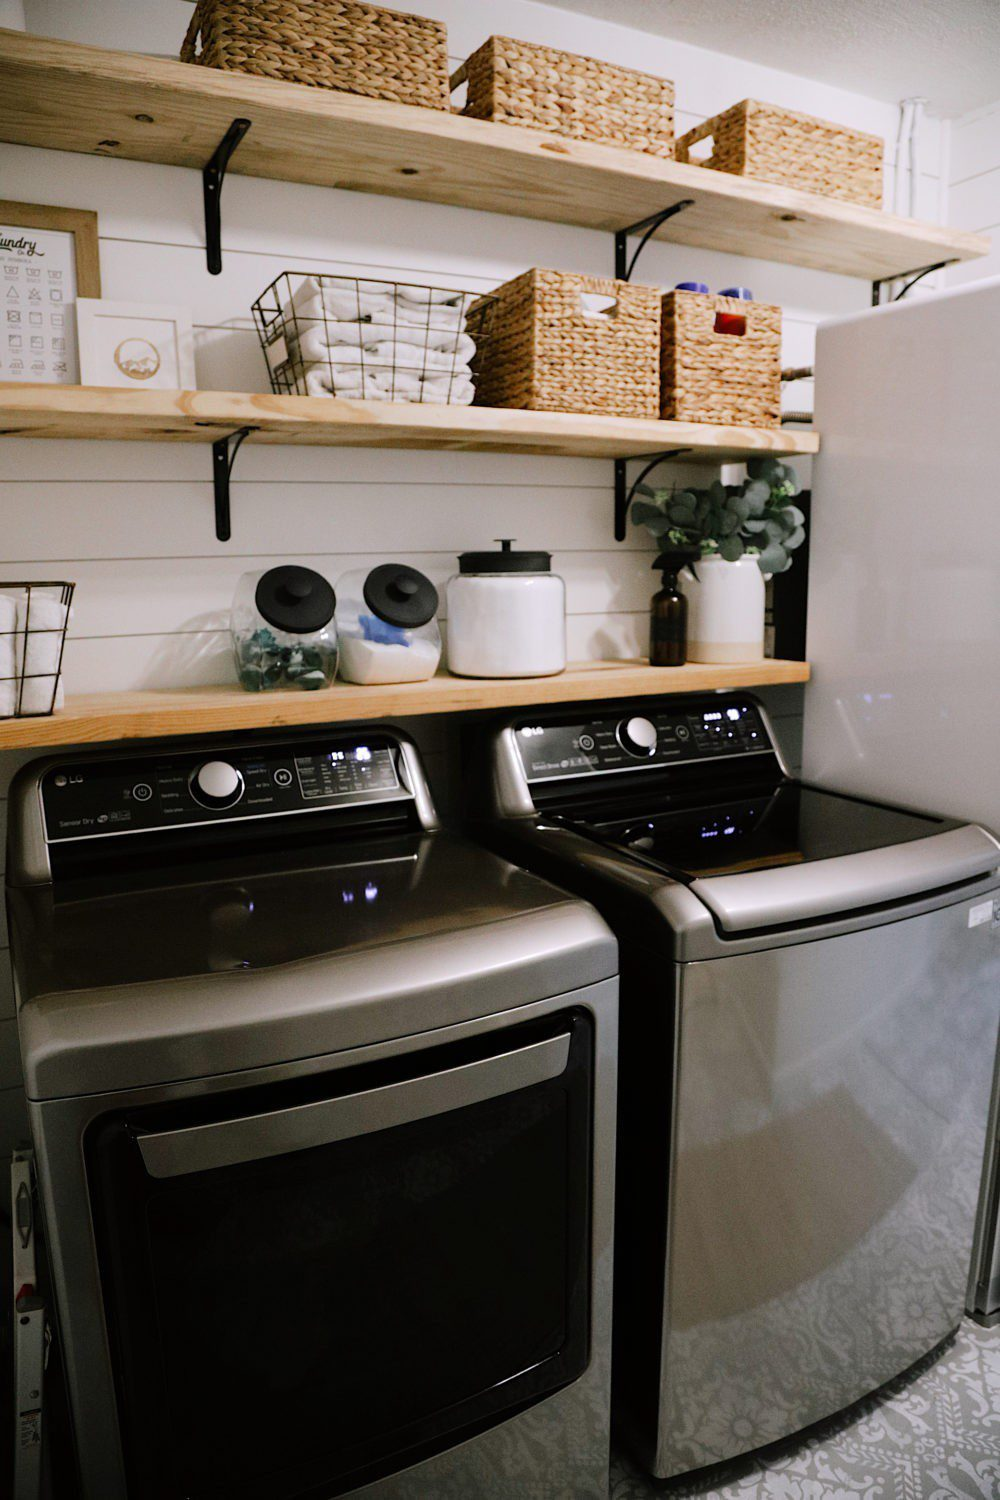 How We Designed a Family Friendly Laundry Room in our Garage - The Reveal! | How We Designed a Family Friendly Laundry Room in our Garage - The Reveal! by popular Florida DIY blog, Fresh Mommy: image of a family friendly laundry room.